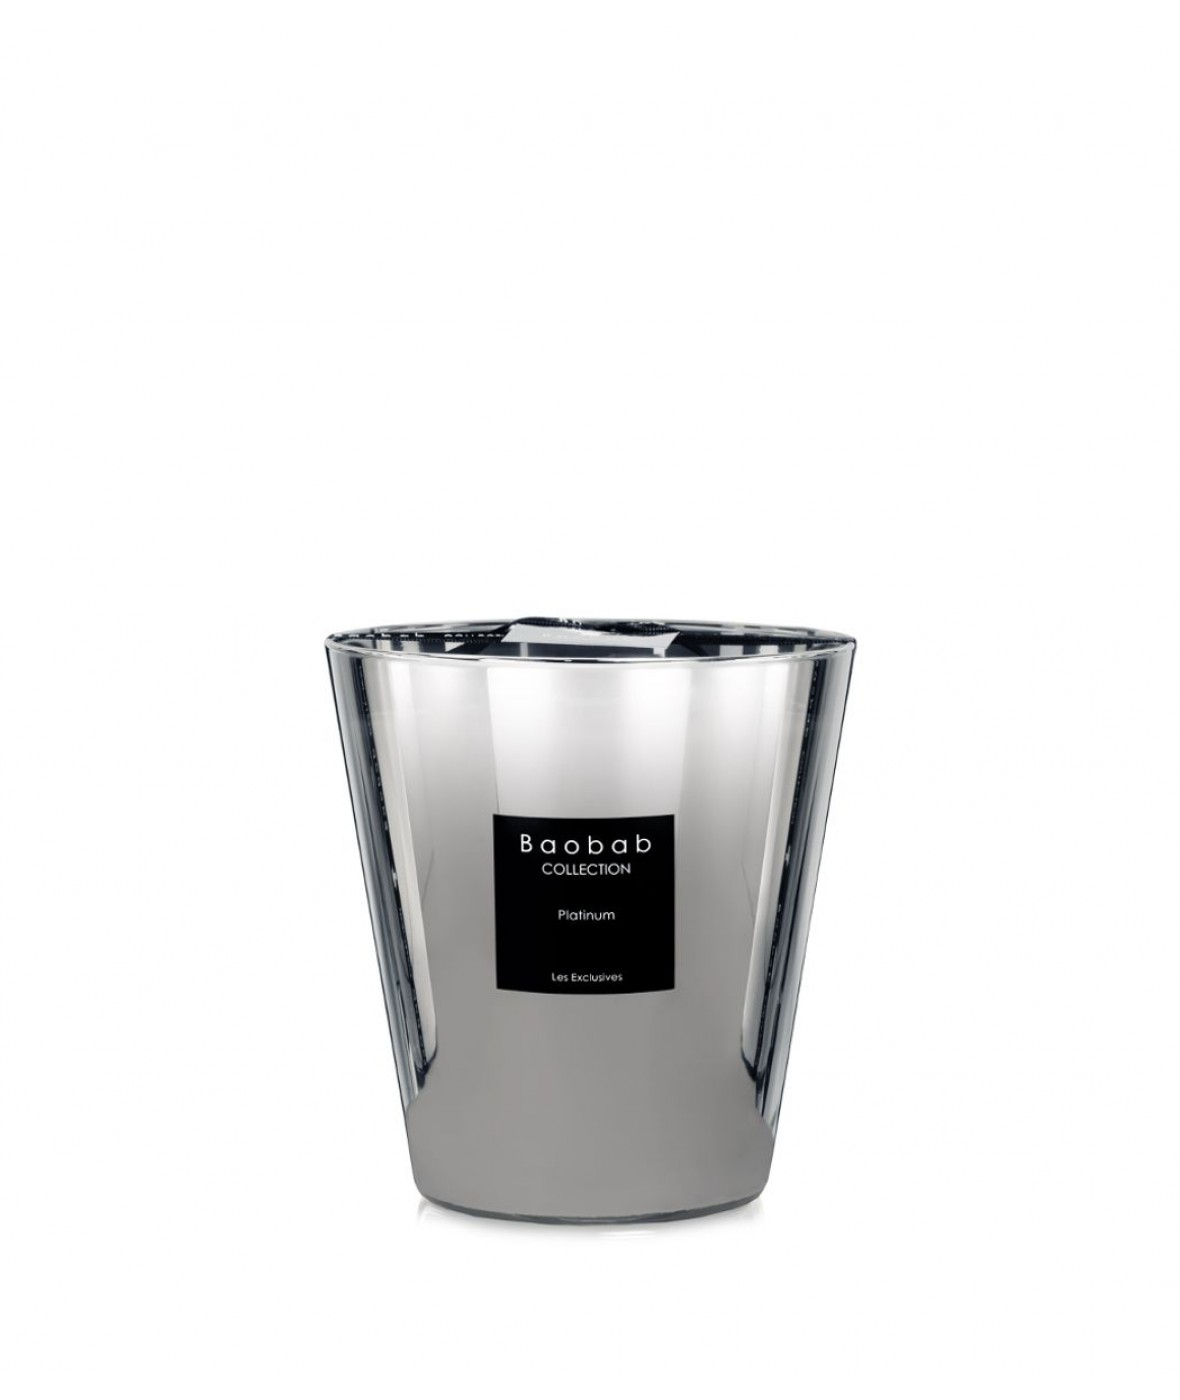 Baobap Scented Candle Platinum (Large)